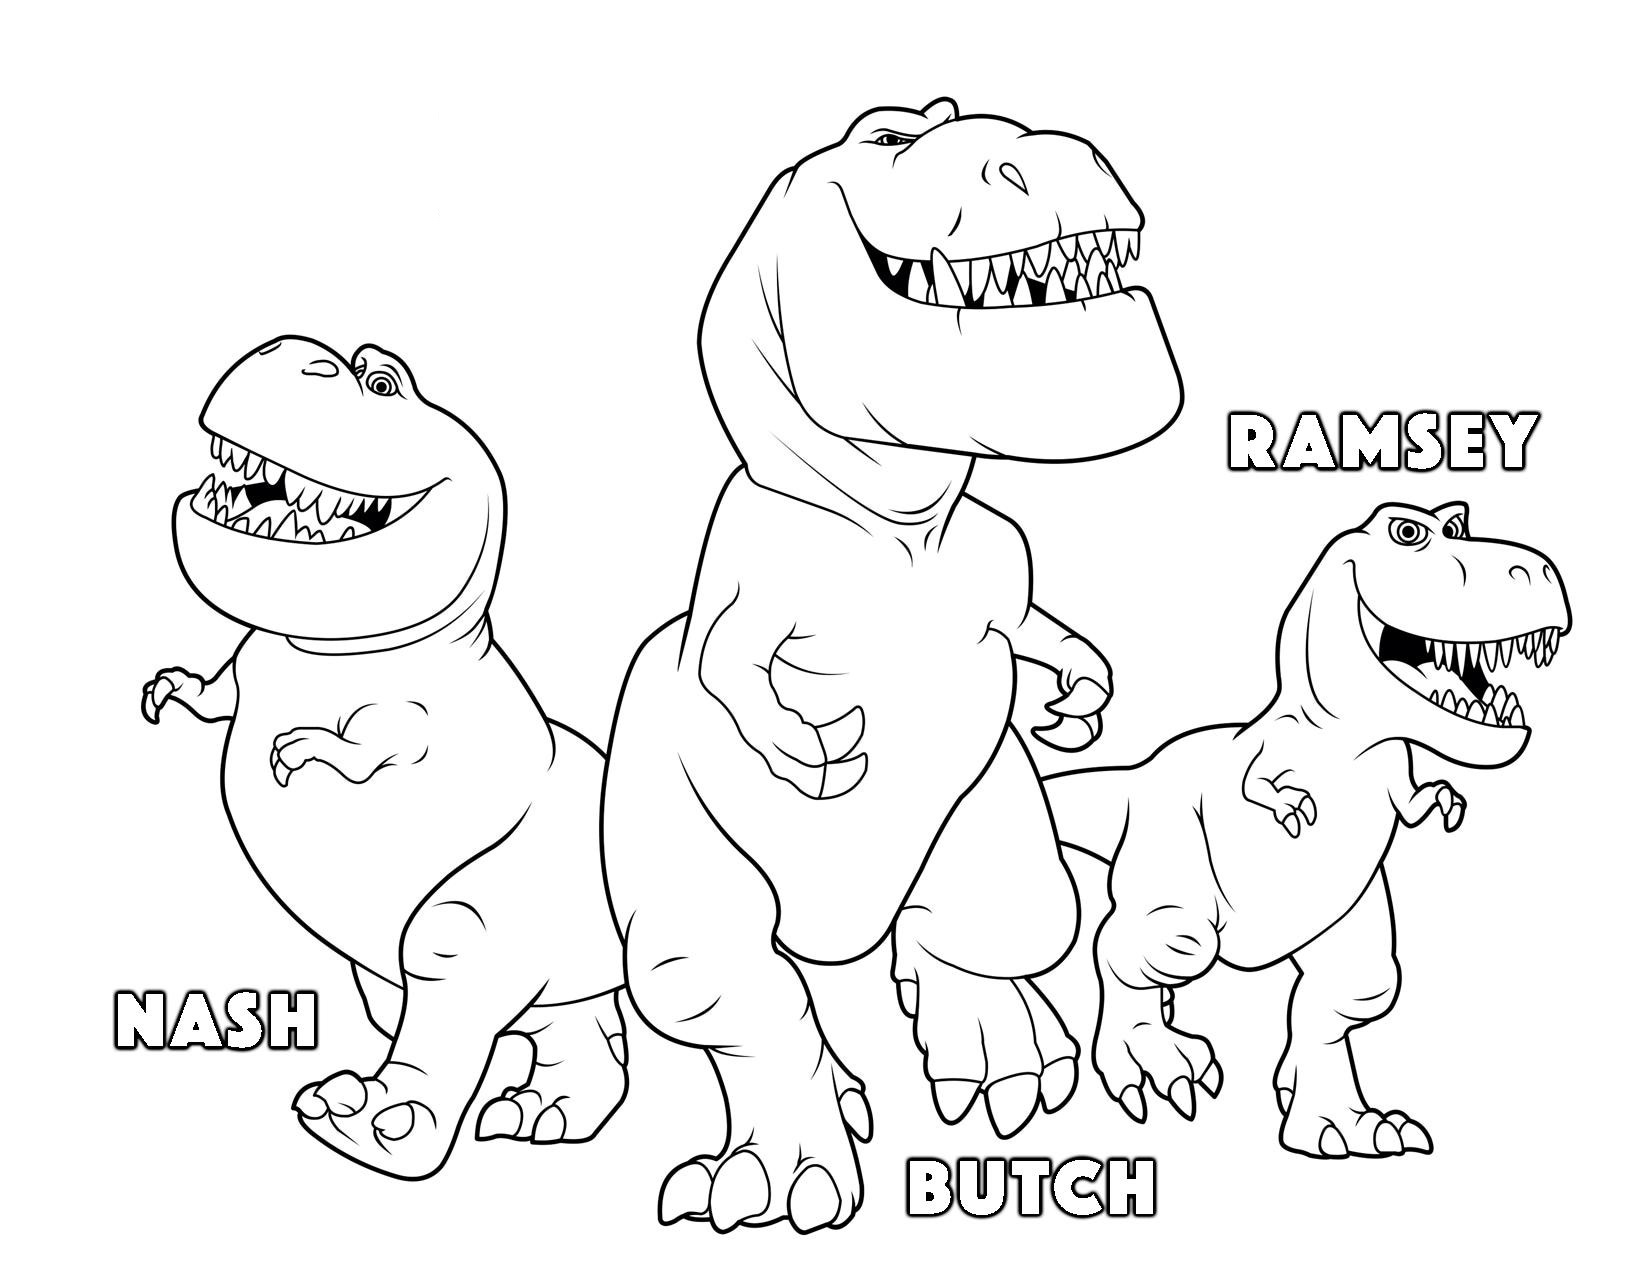 the good dinosaur Butch Ramsey Nash coloring pages